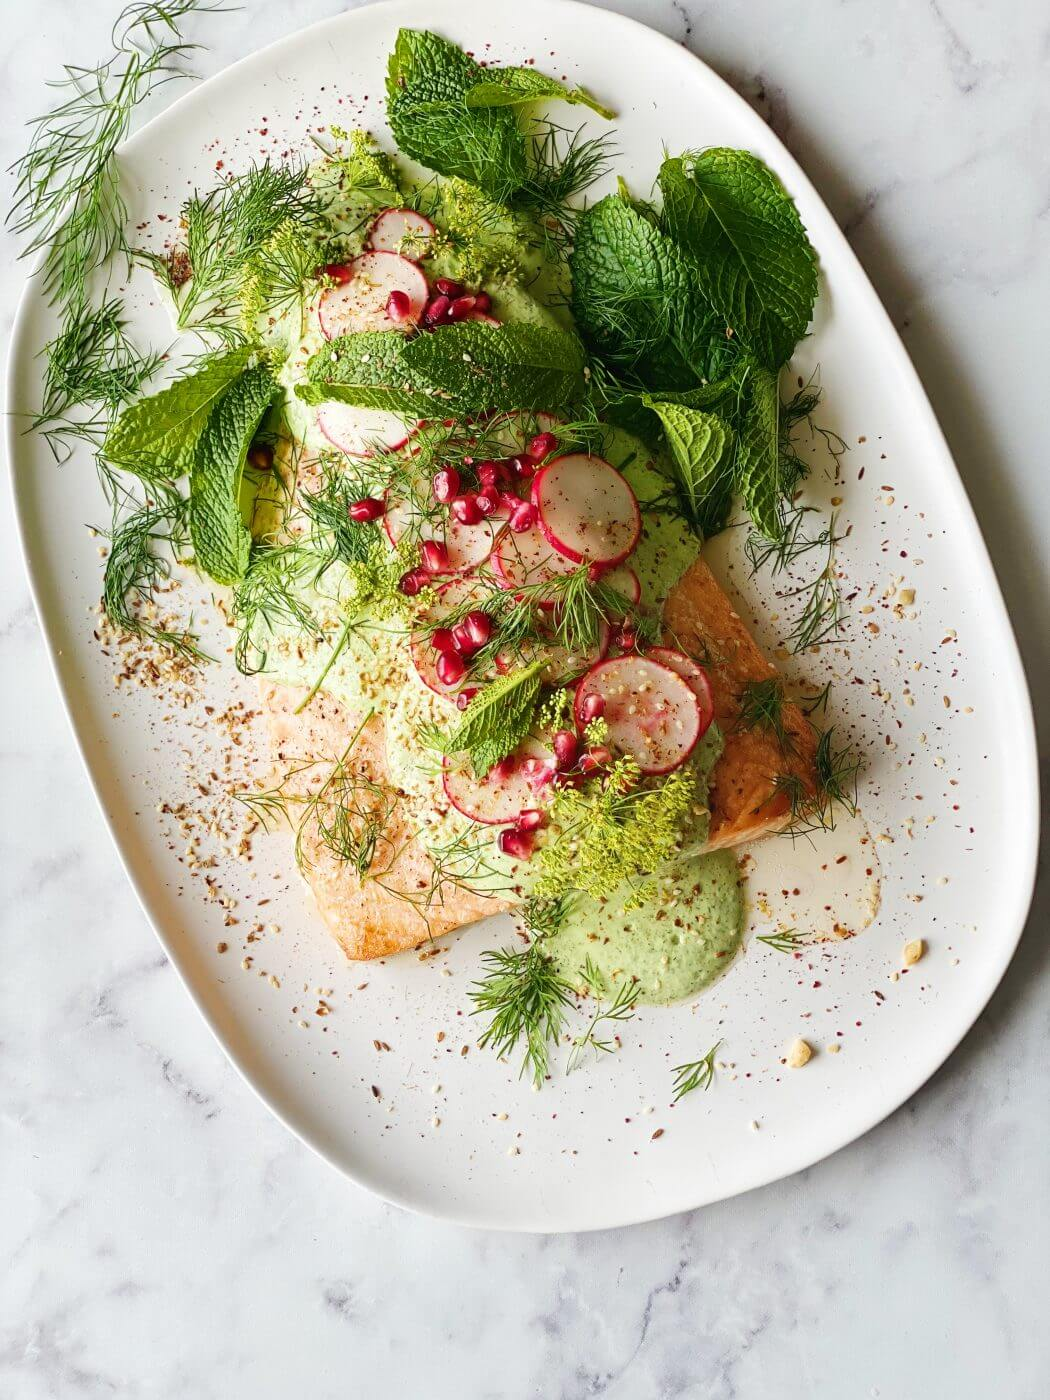 , A Christmas salmon with green tahini dressing for all……Merry Christmas to you